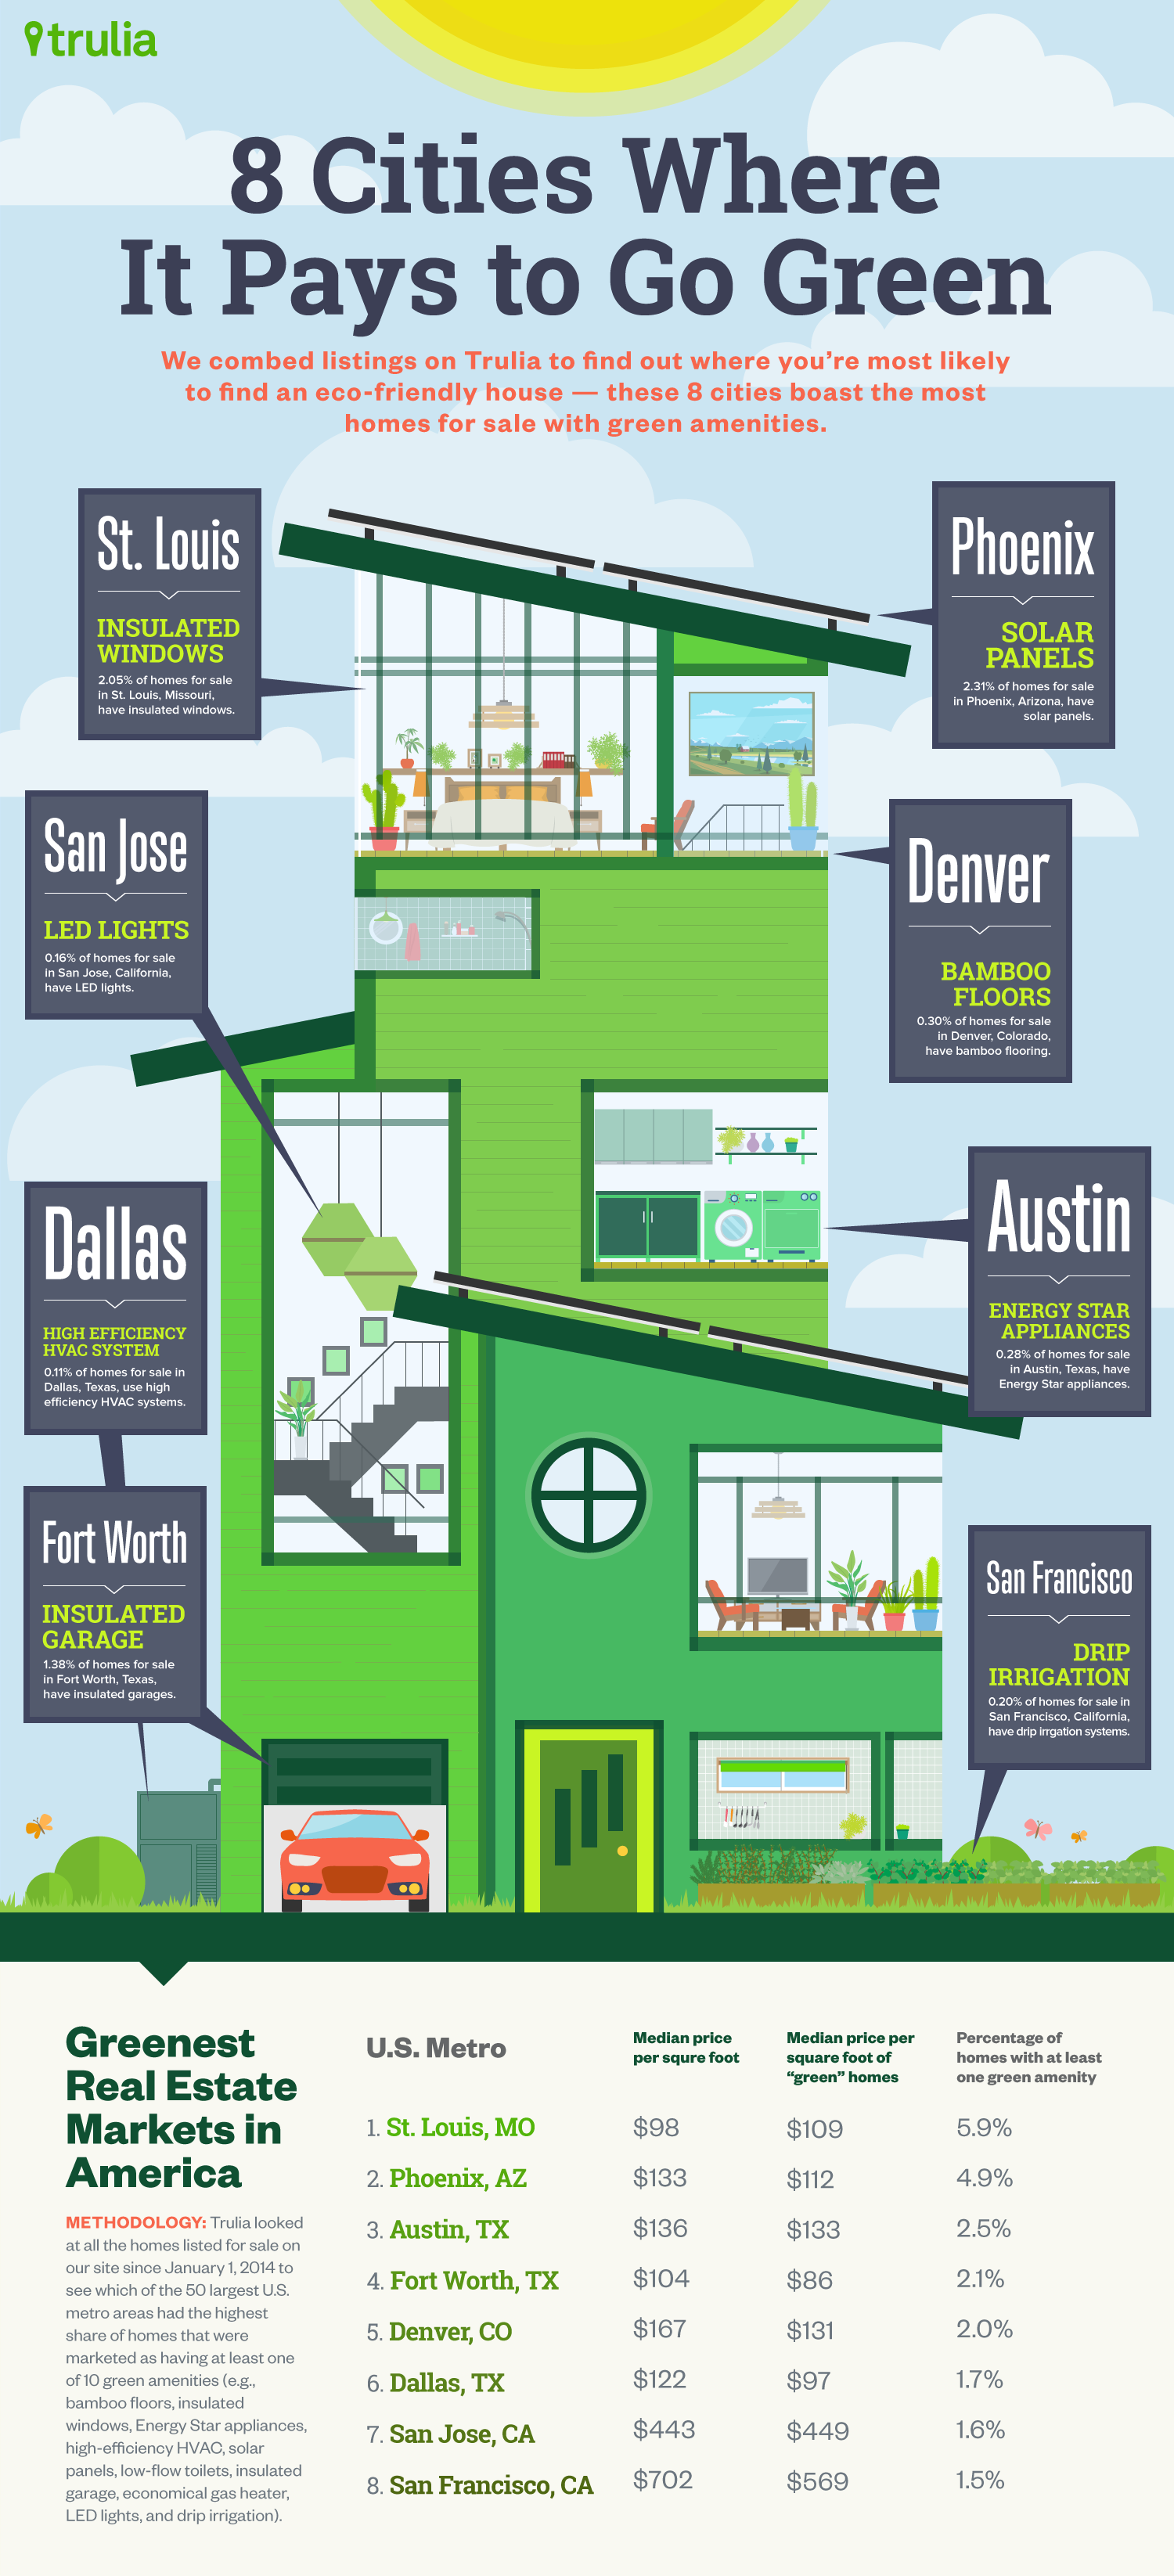 April2015-Trulia-8-Cities-Where-It-Pays-To-Go-Green-Infographic